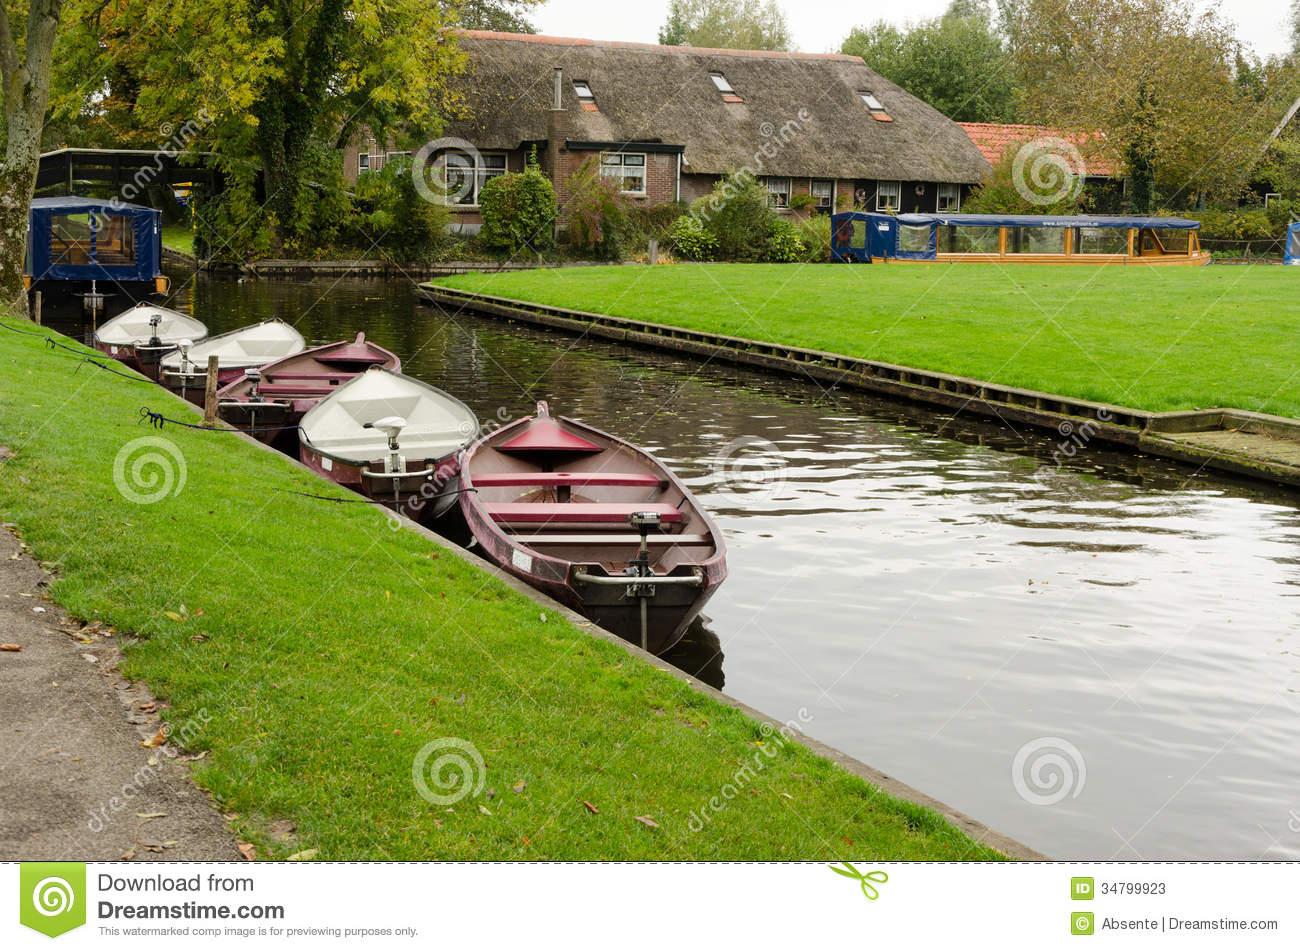 Tiny House Town Beautiful Seattle Tiny House: Giethoorn Stock Image. Image Of Horizontal, Green, Grass